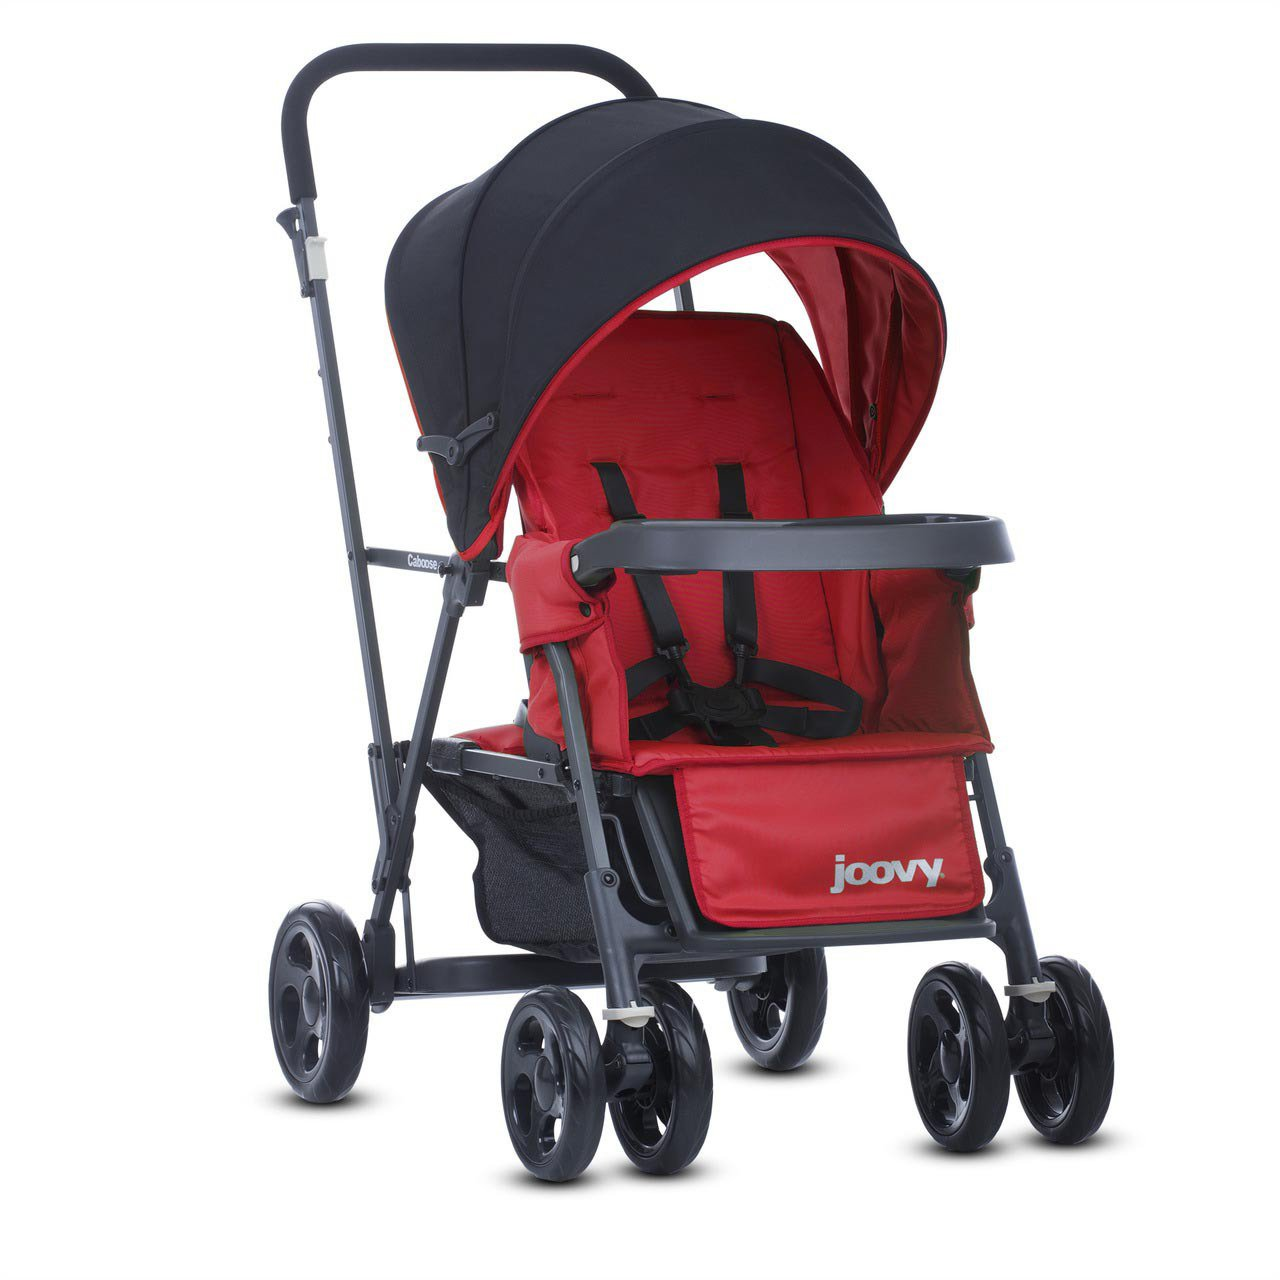 Joovy 8141 Caboose Graphite Stand on Tandem Stroller, Red